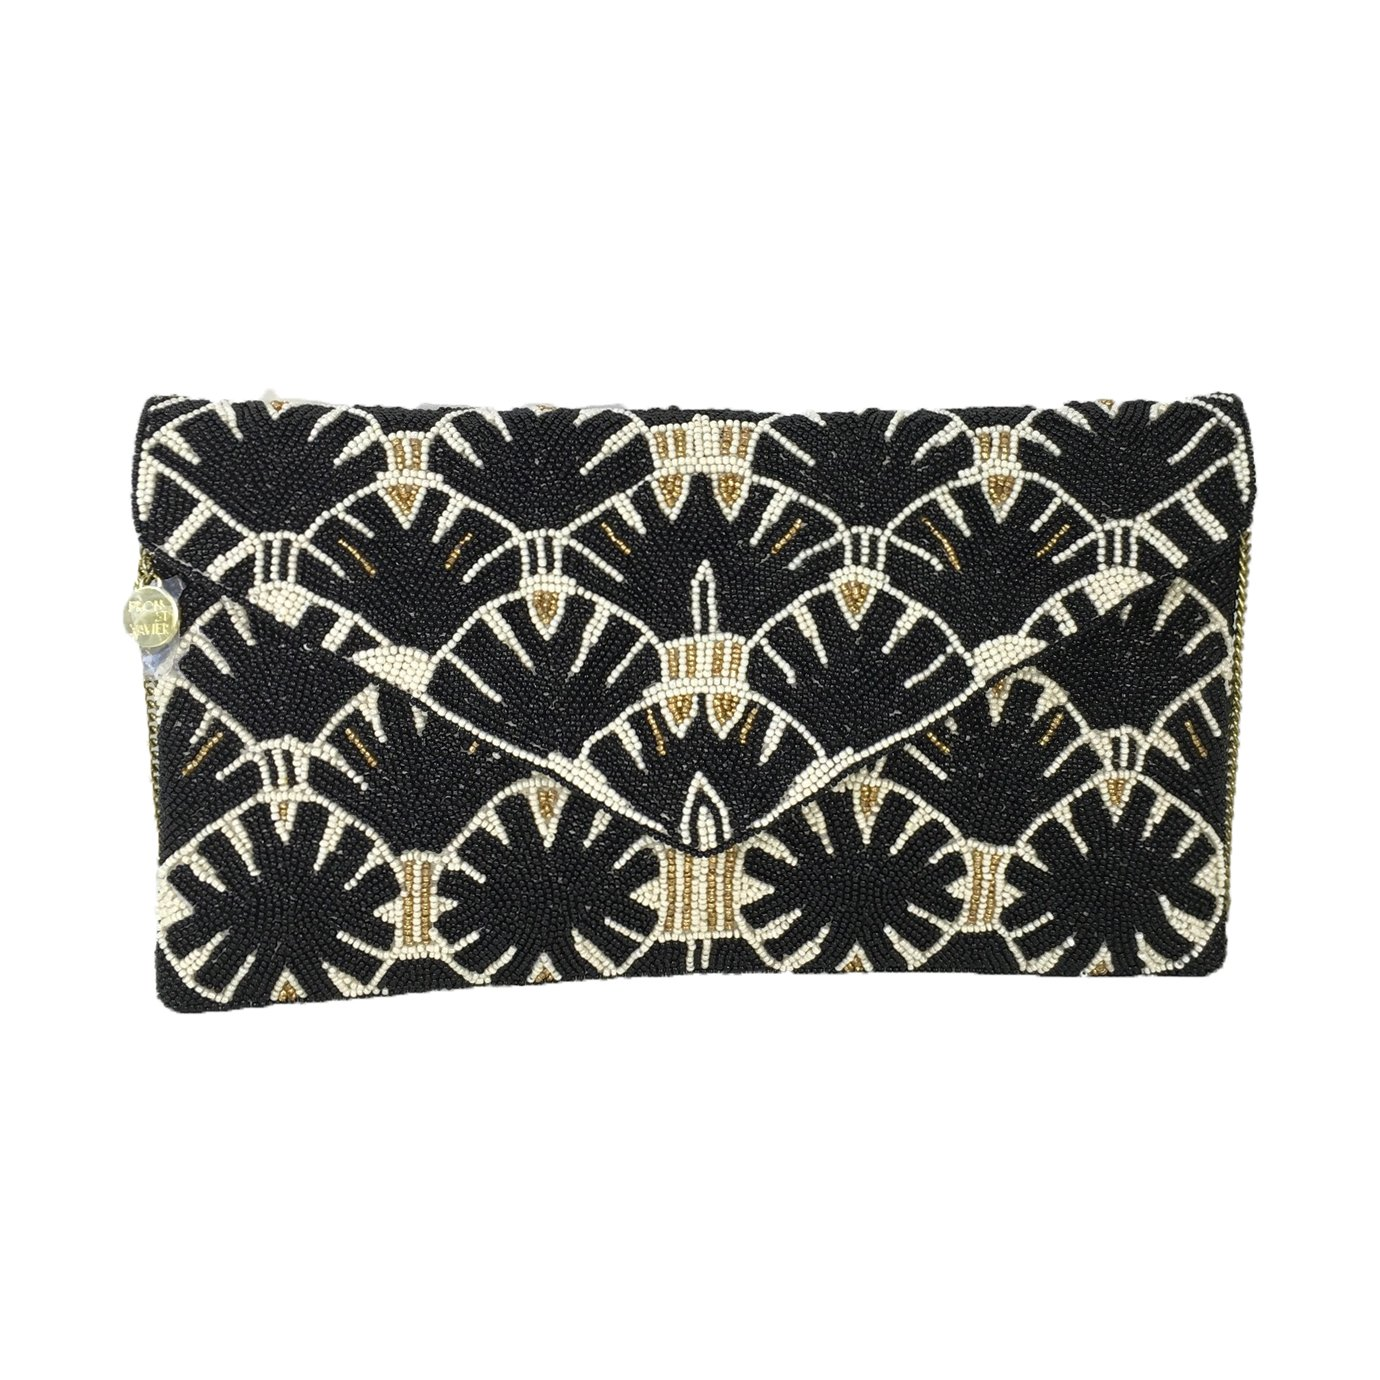 From St Xavier Whittaker Beaded Convertible Clutch, Black/Cream